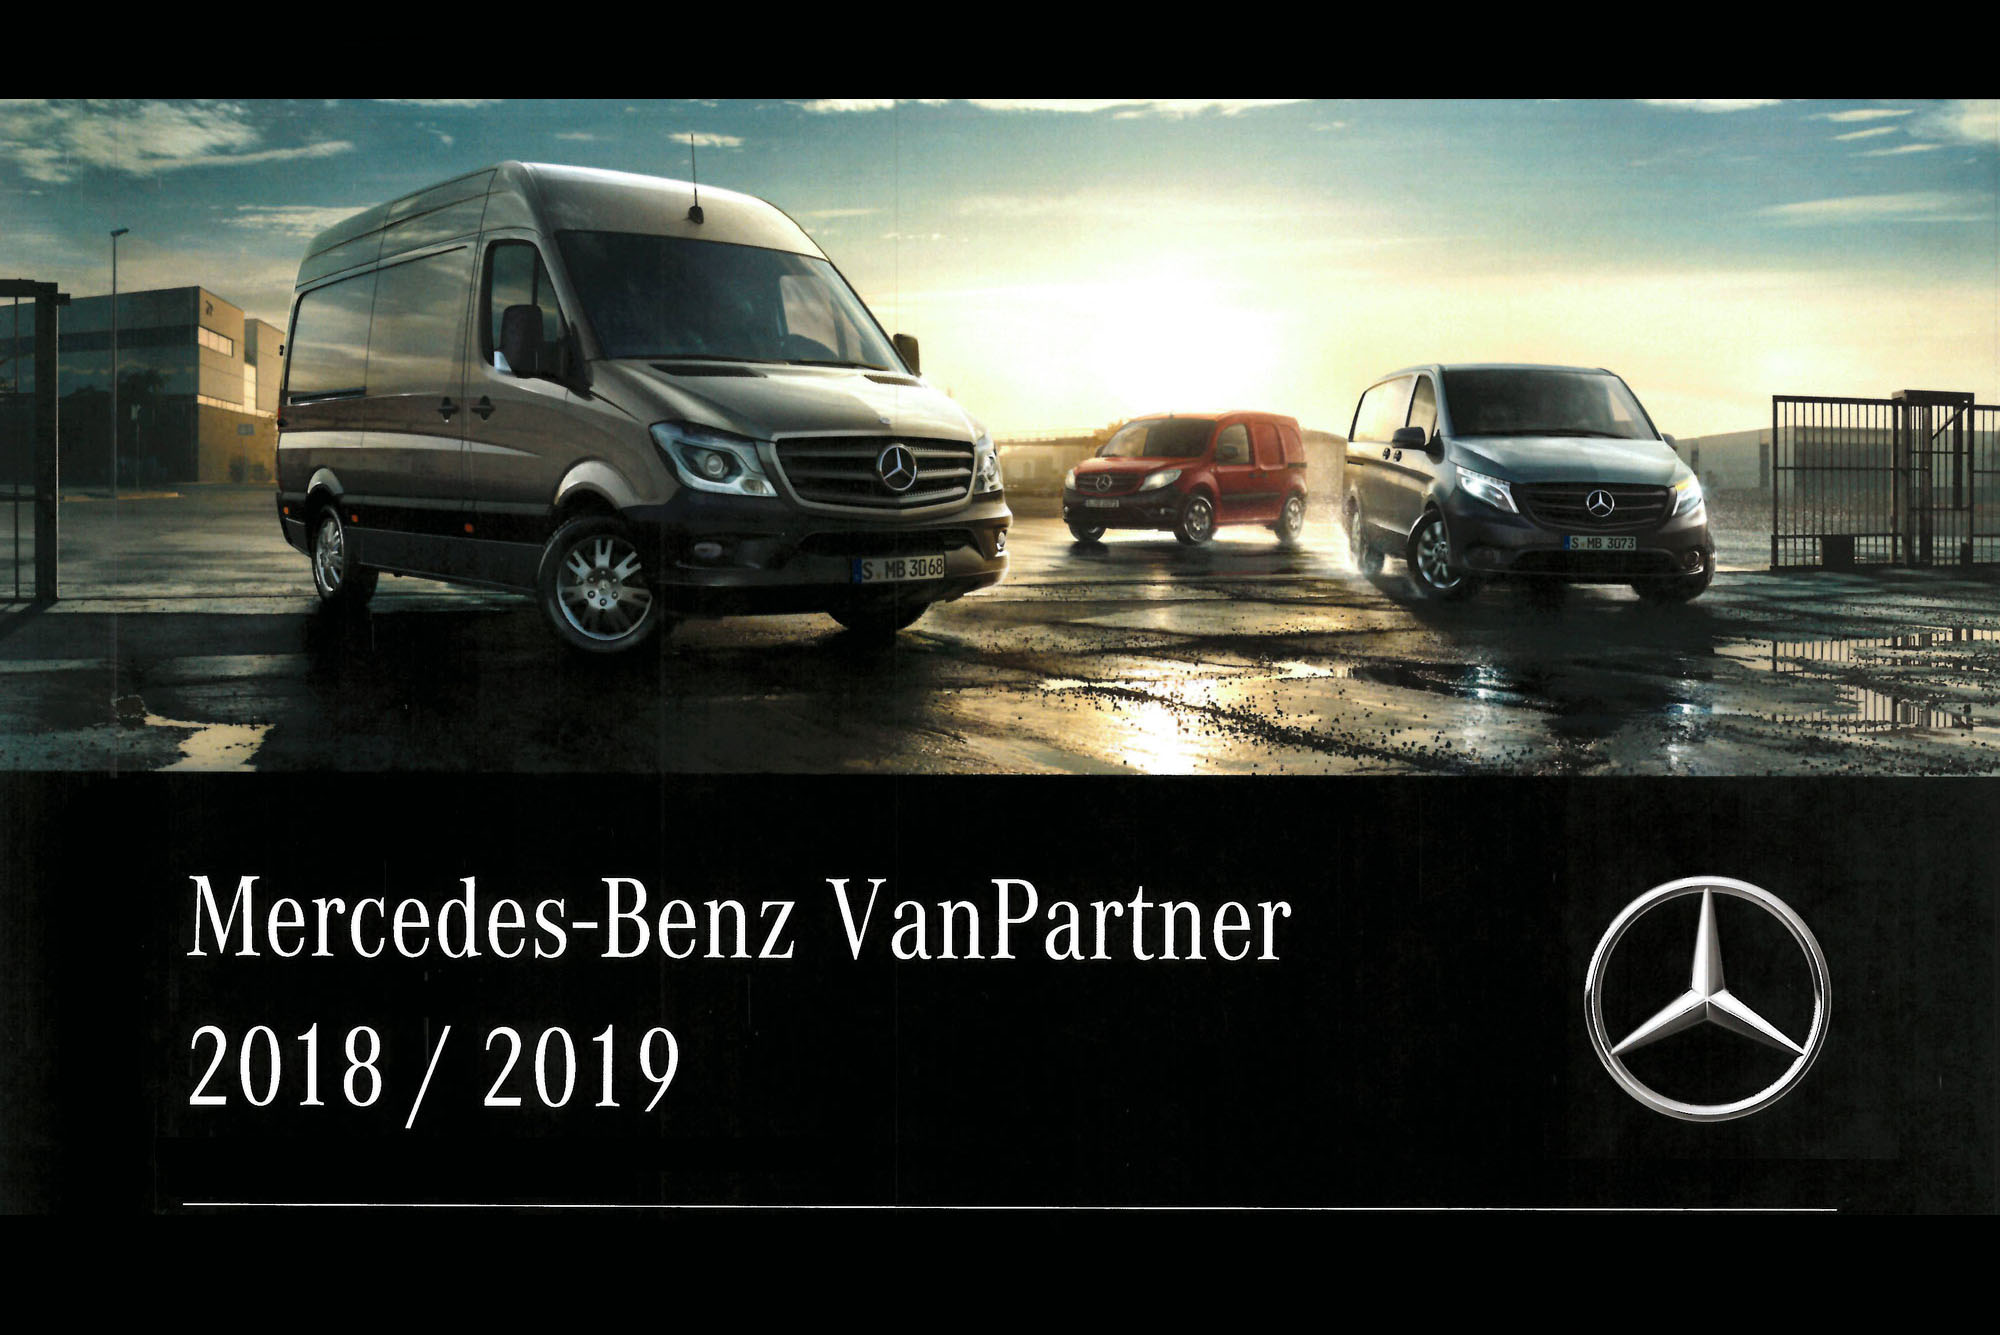 Modul-System awarded a renewed international Van Partner Certificate from Mercedes Benz